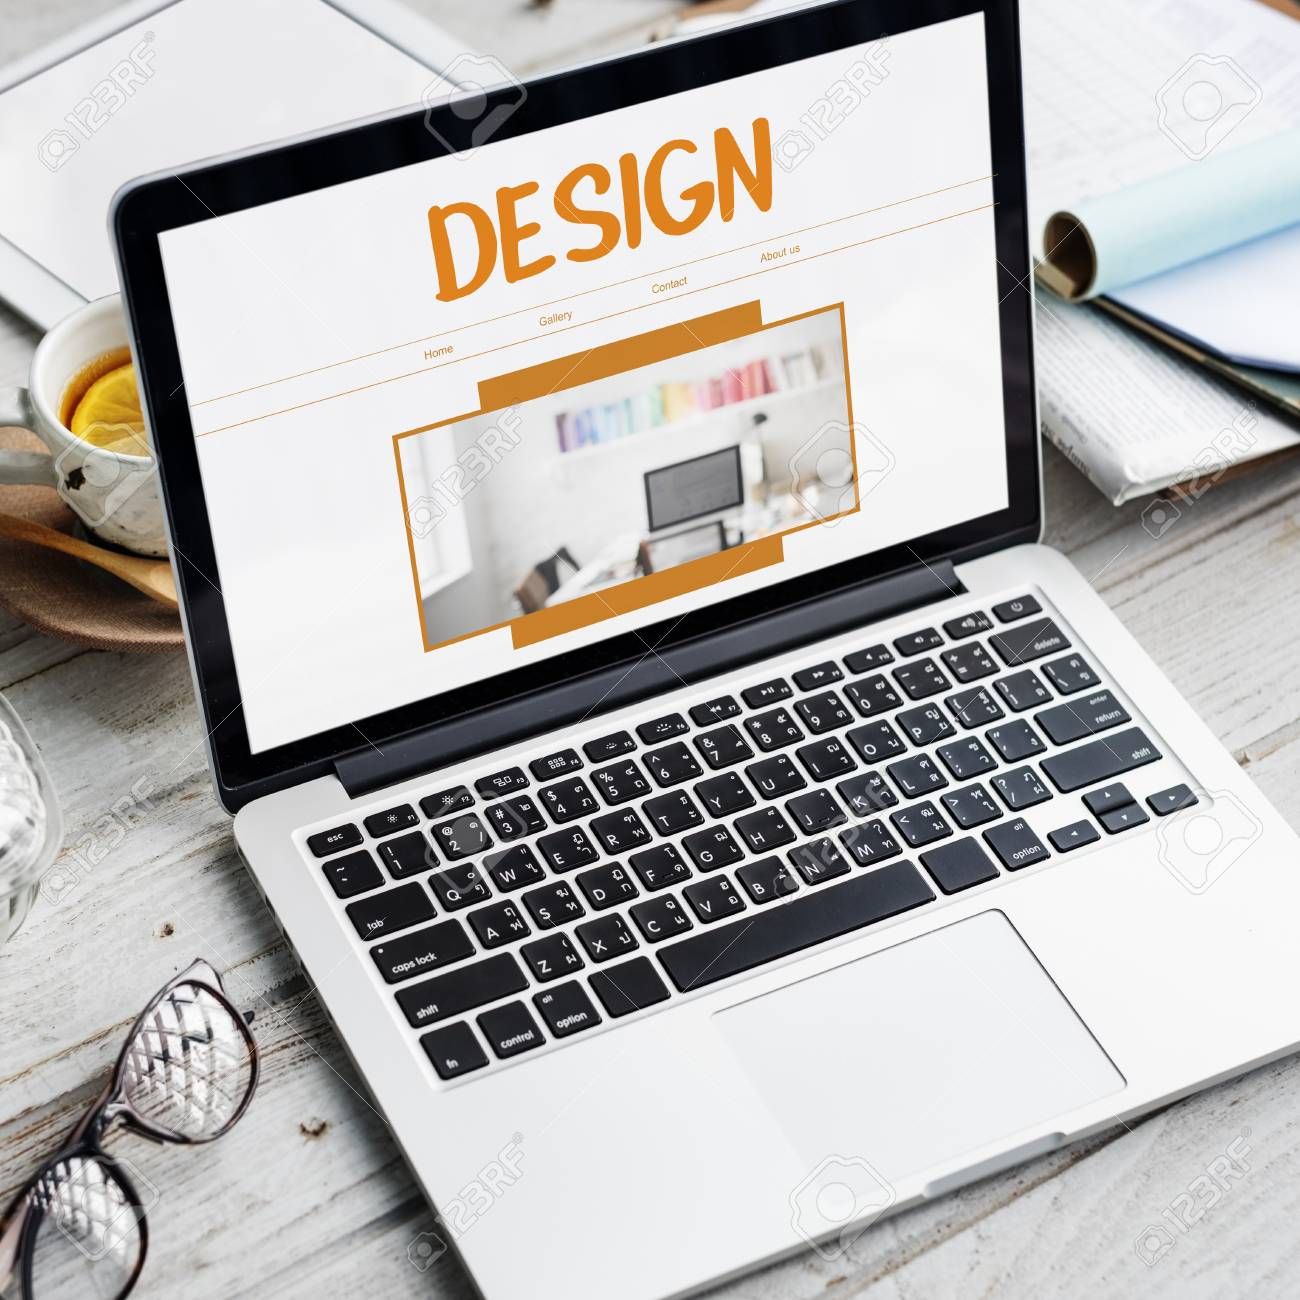 Design Creative Drawing Model Objective Stock Photo - 75097257